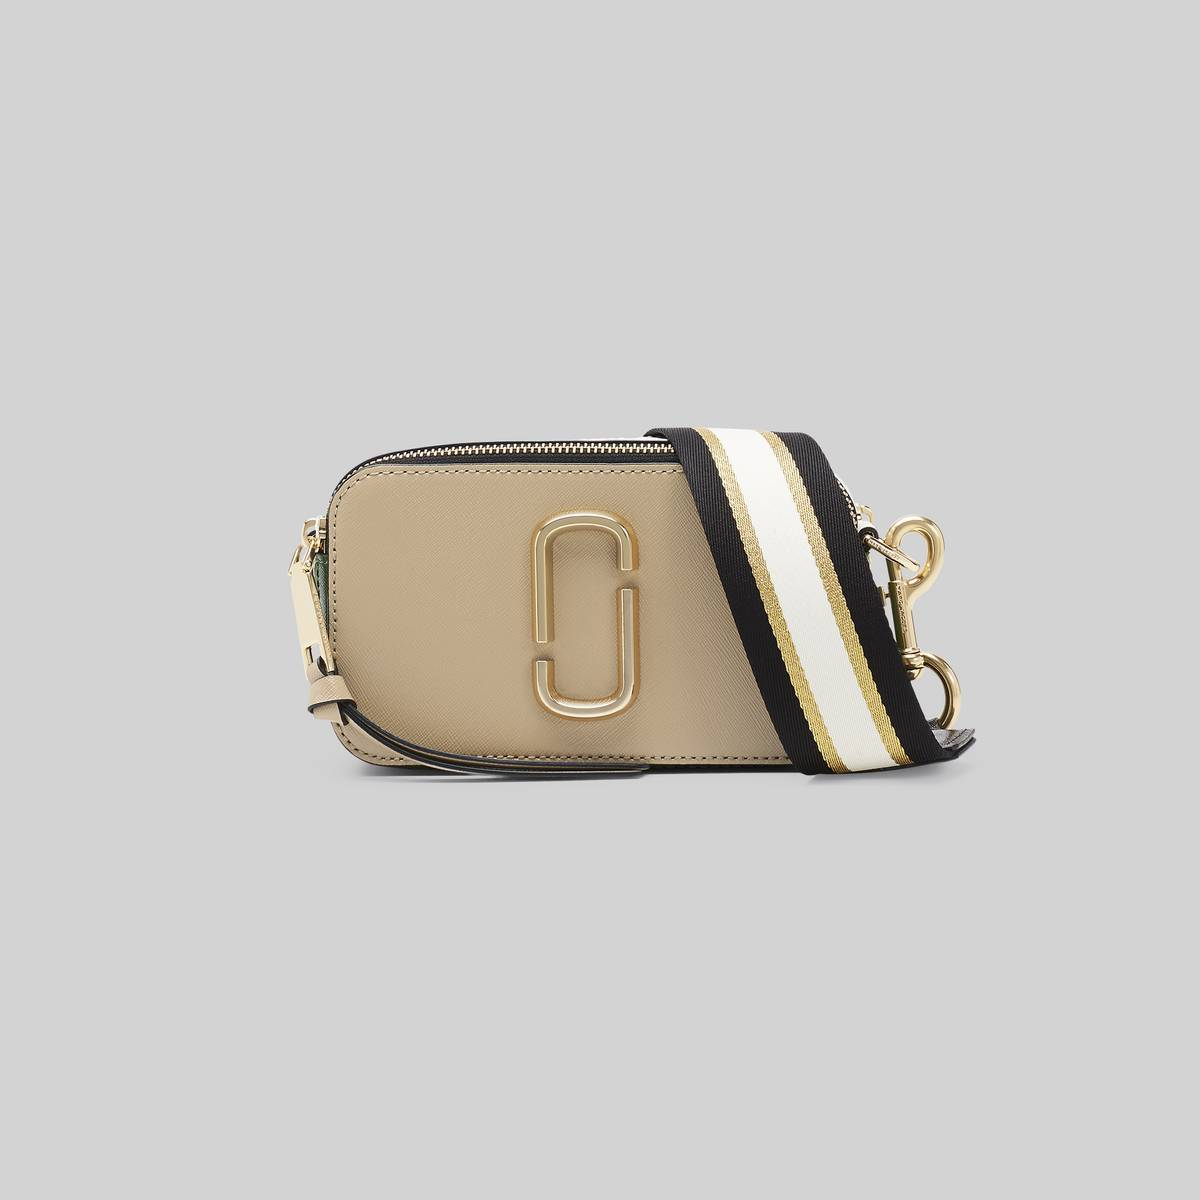 Small camera-style bag in Saffiano leather with an adjustable crossbody strap. | MARC JACOBS Women\\'s The Snapshot Bag in Sandcastle Multi